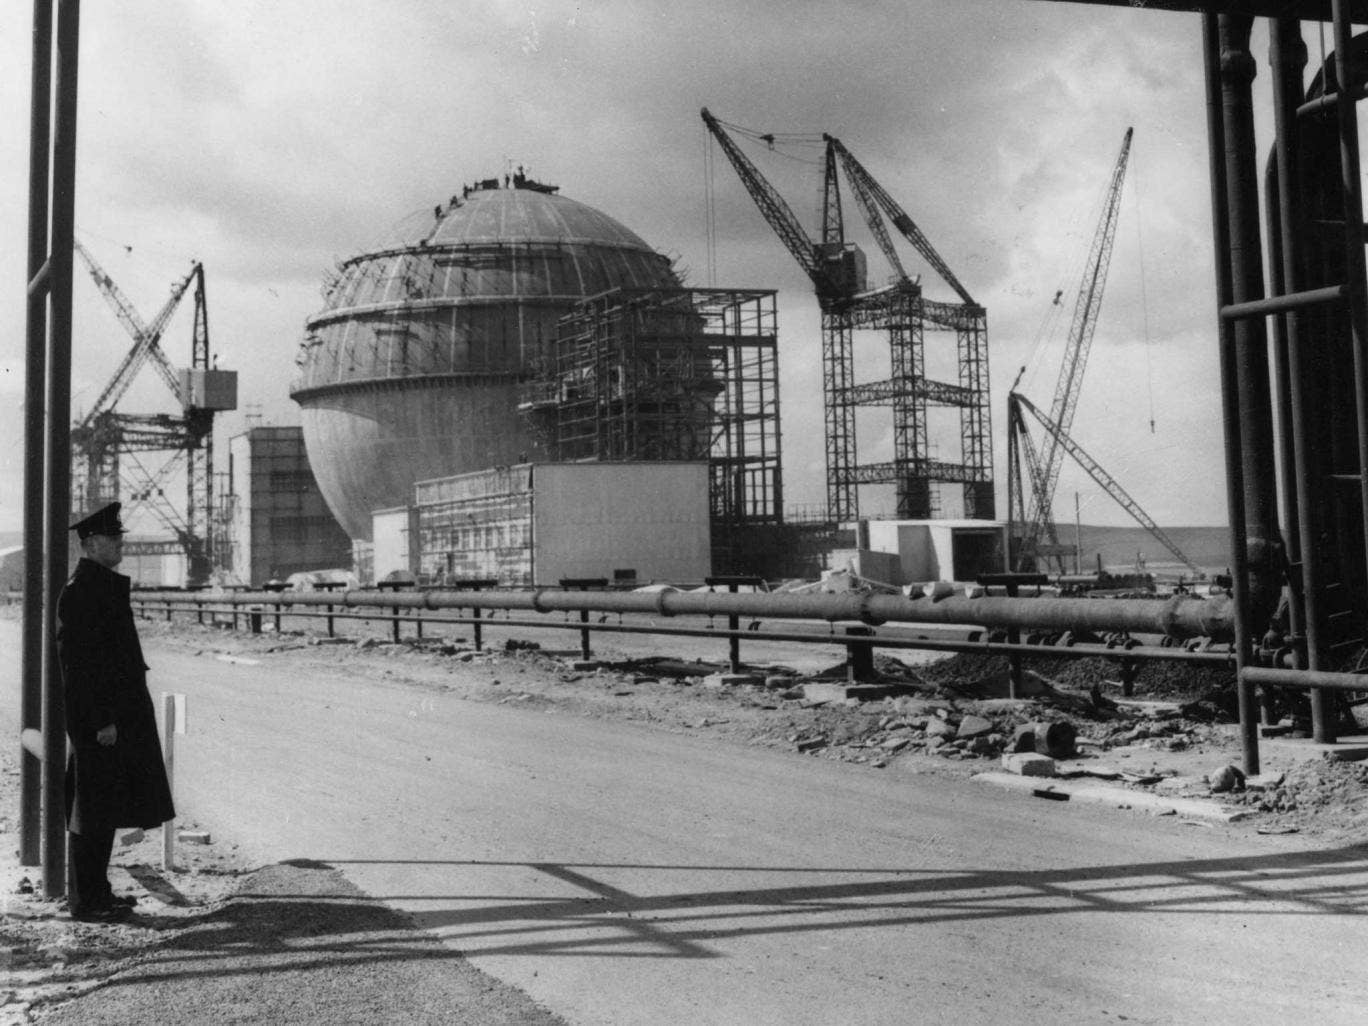 Dounreay in the 1950s - it was Britain's first fast reactor